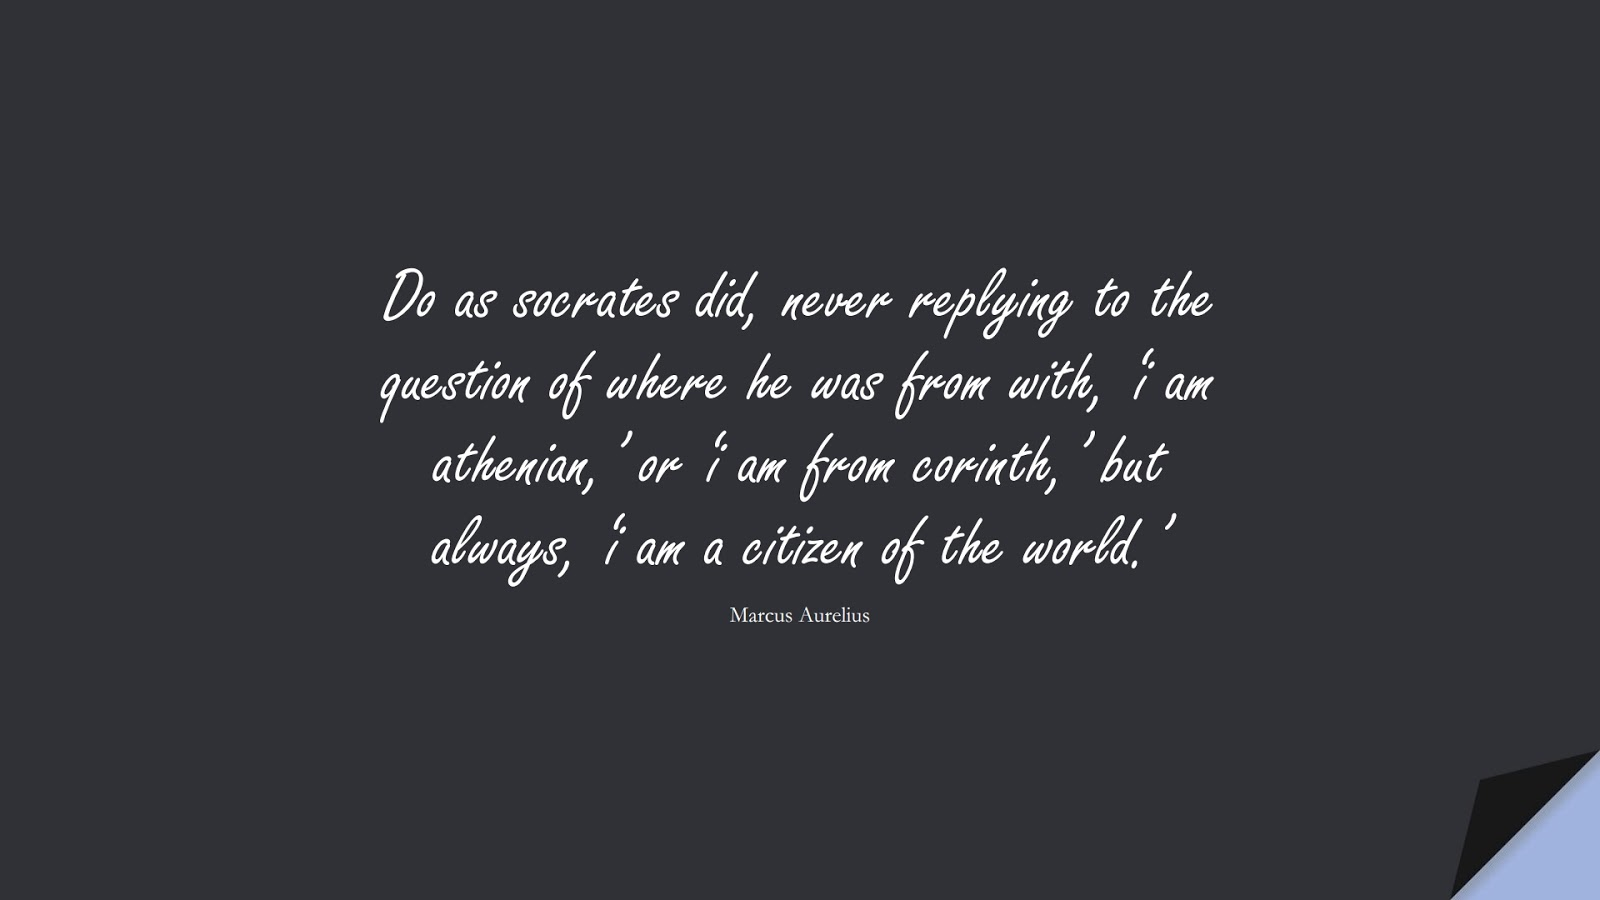 Do as socrates did, never replying to the question of where he was from with, 'i am athenian,' or 'i am from corinth,' but always, 'i am a citizen of the world.' (Marcus Aurelius);  #MarcusAureliusQuotes